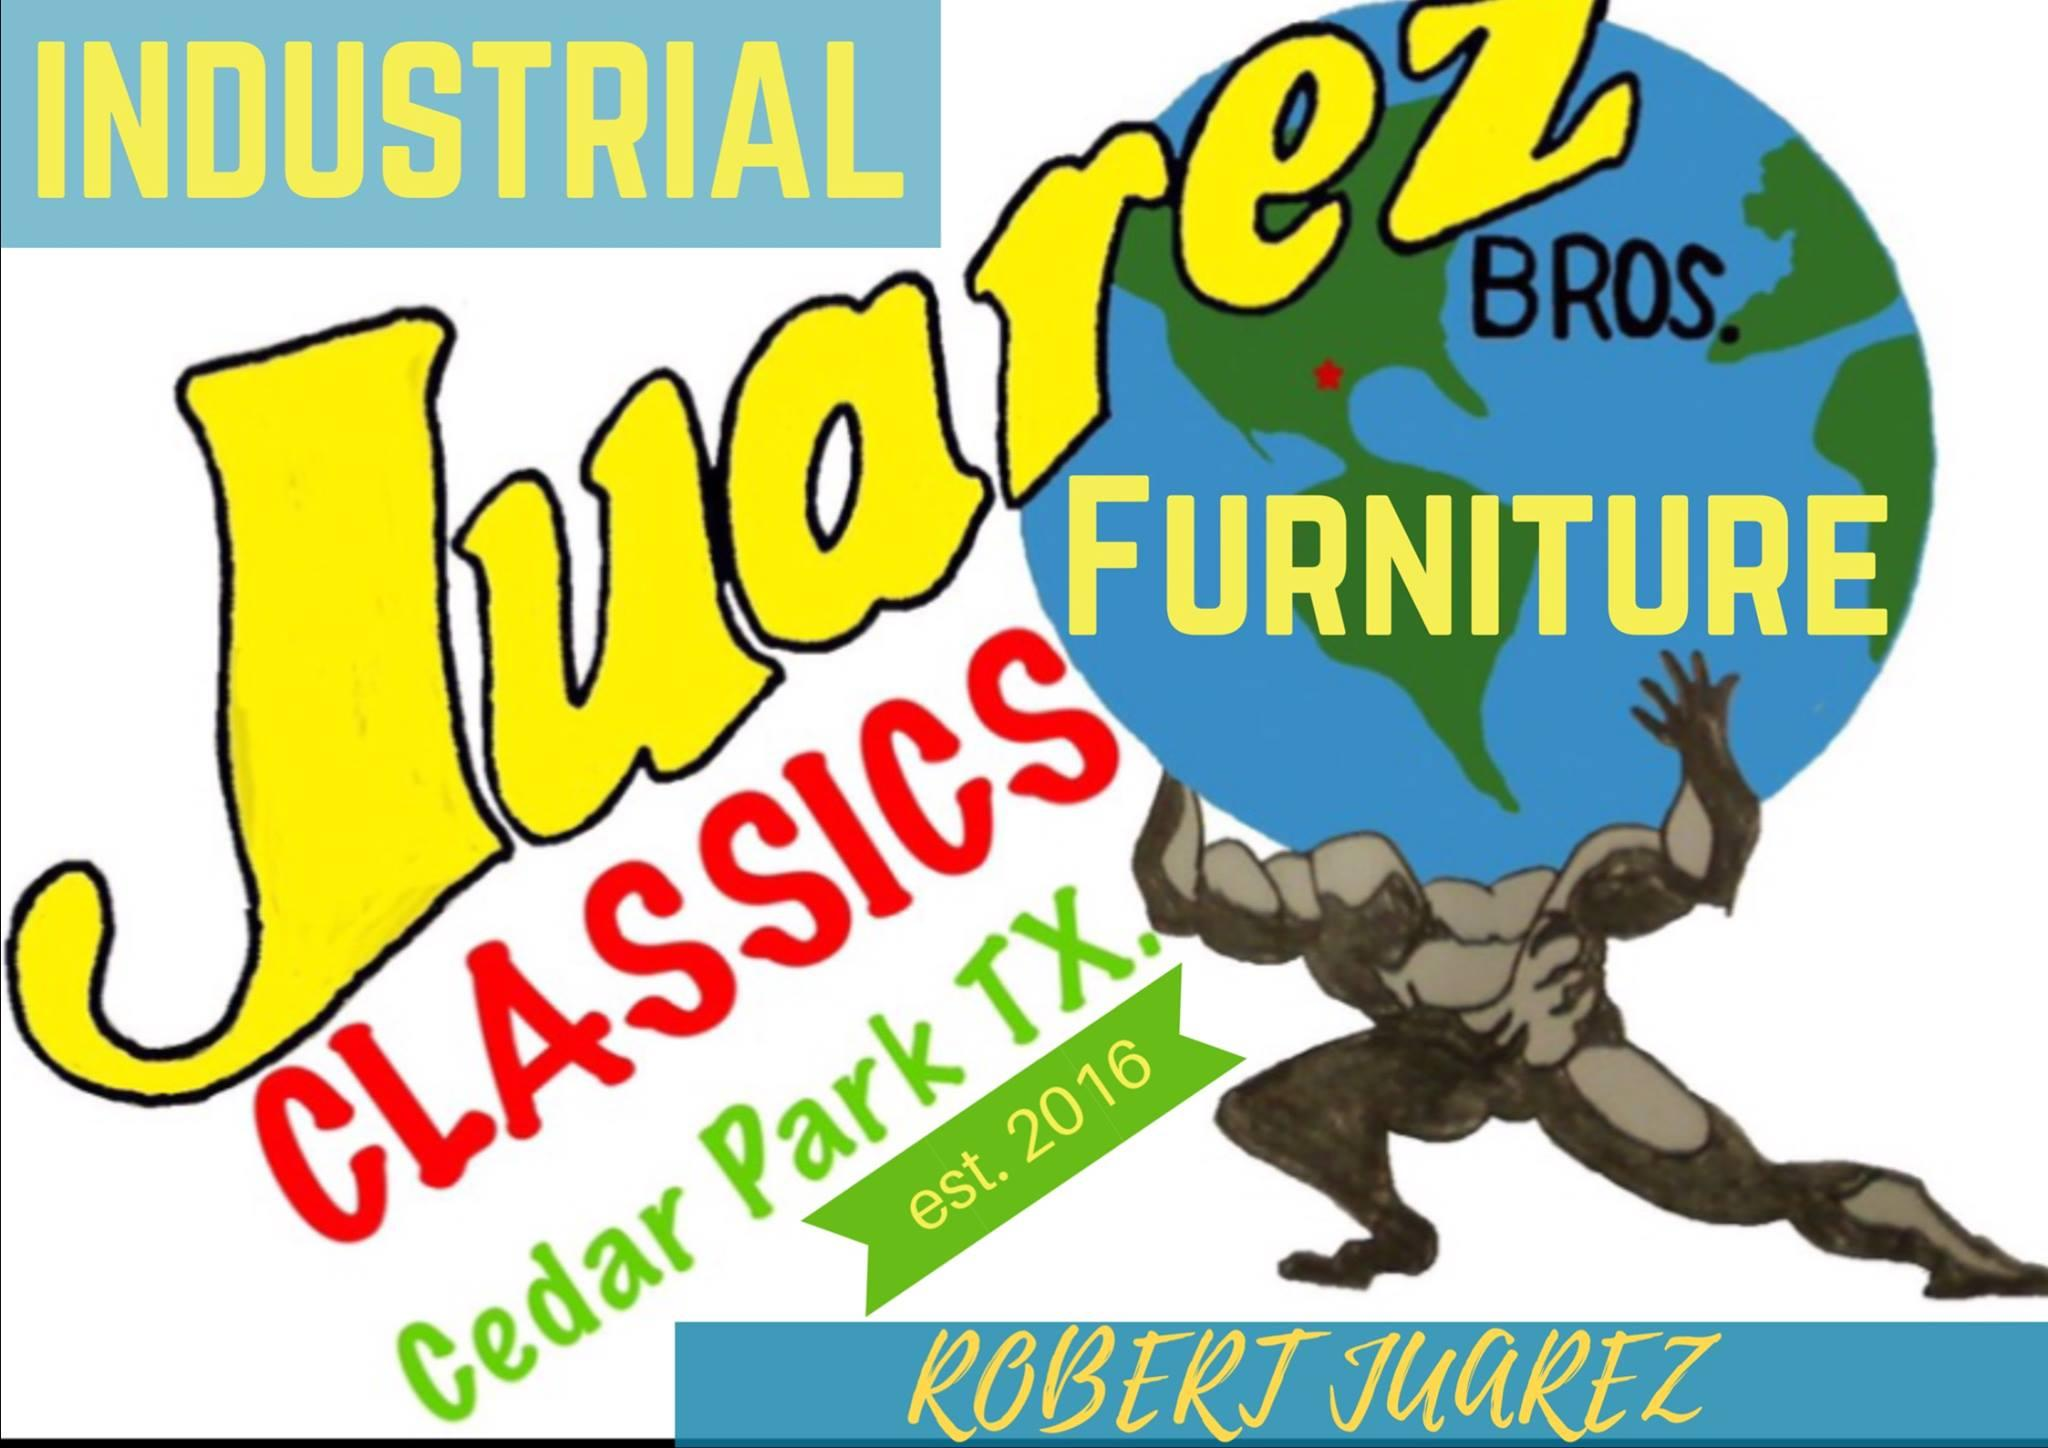 Juarez Bros Furniture